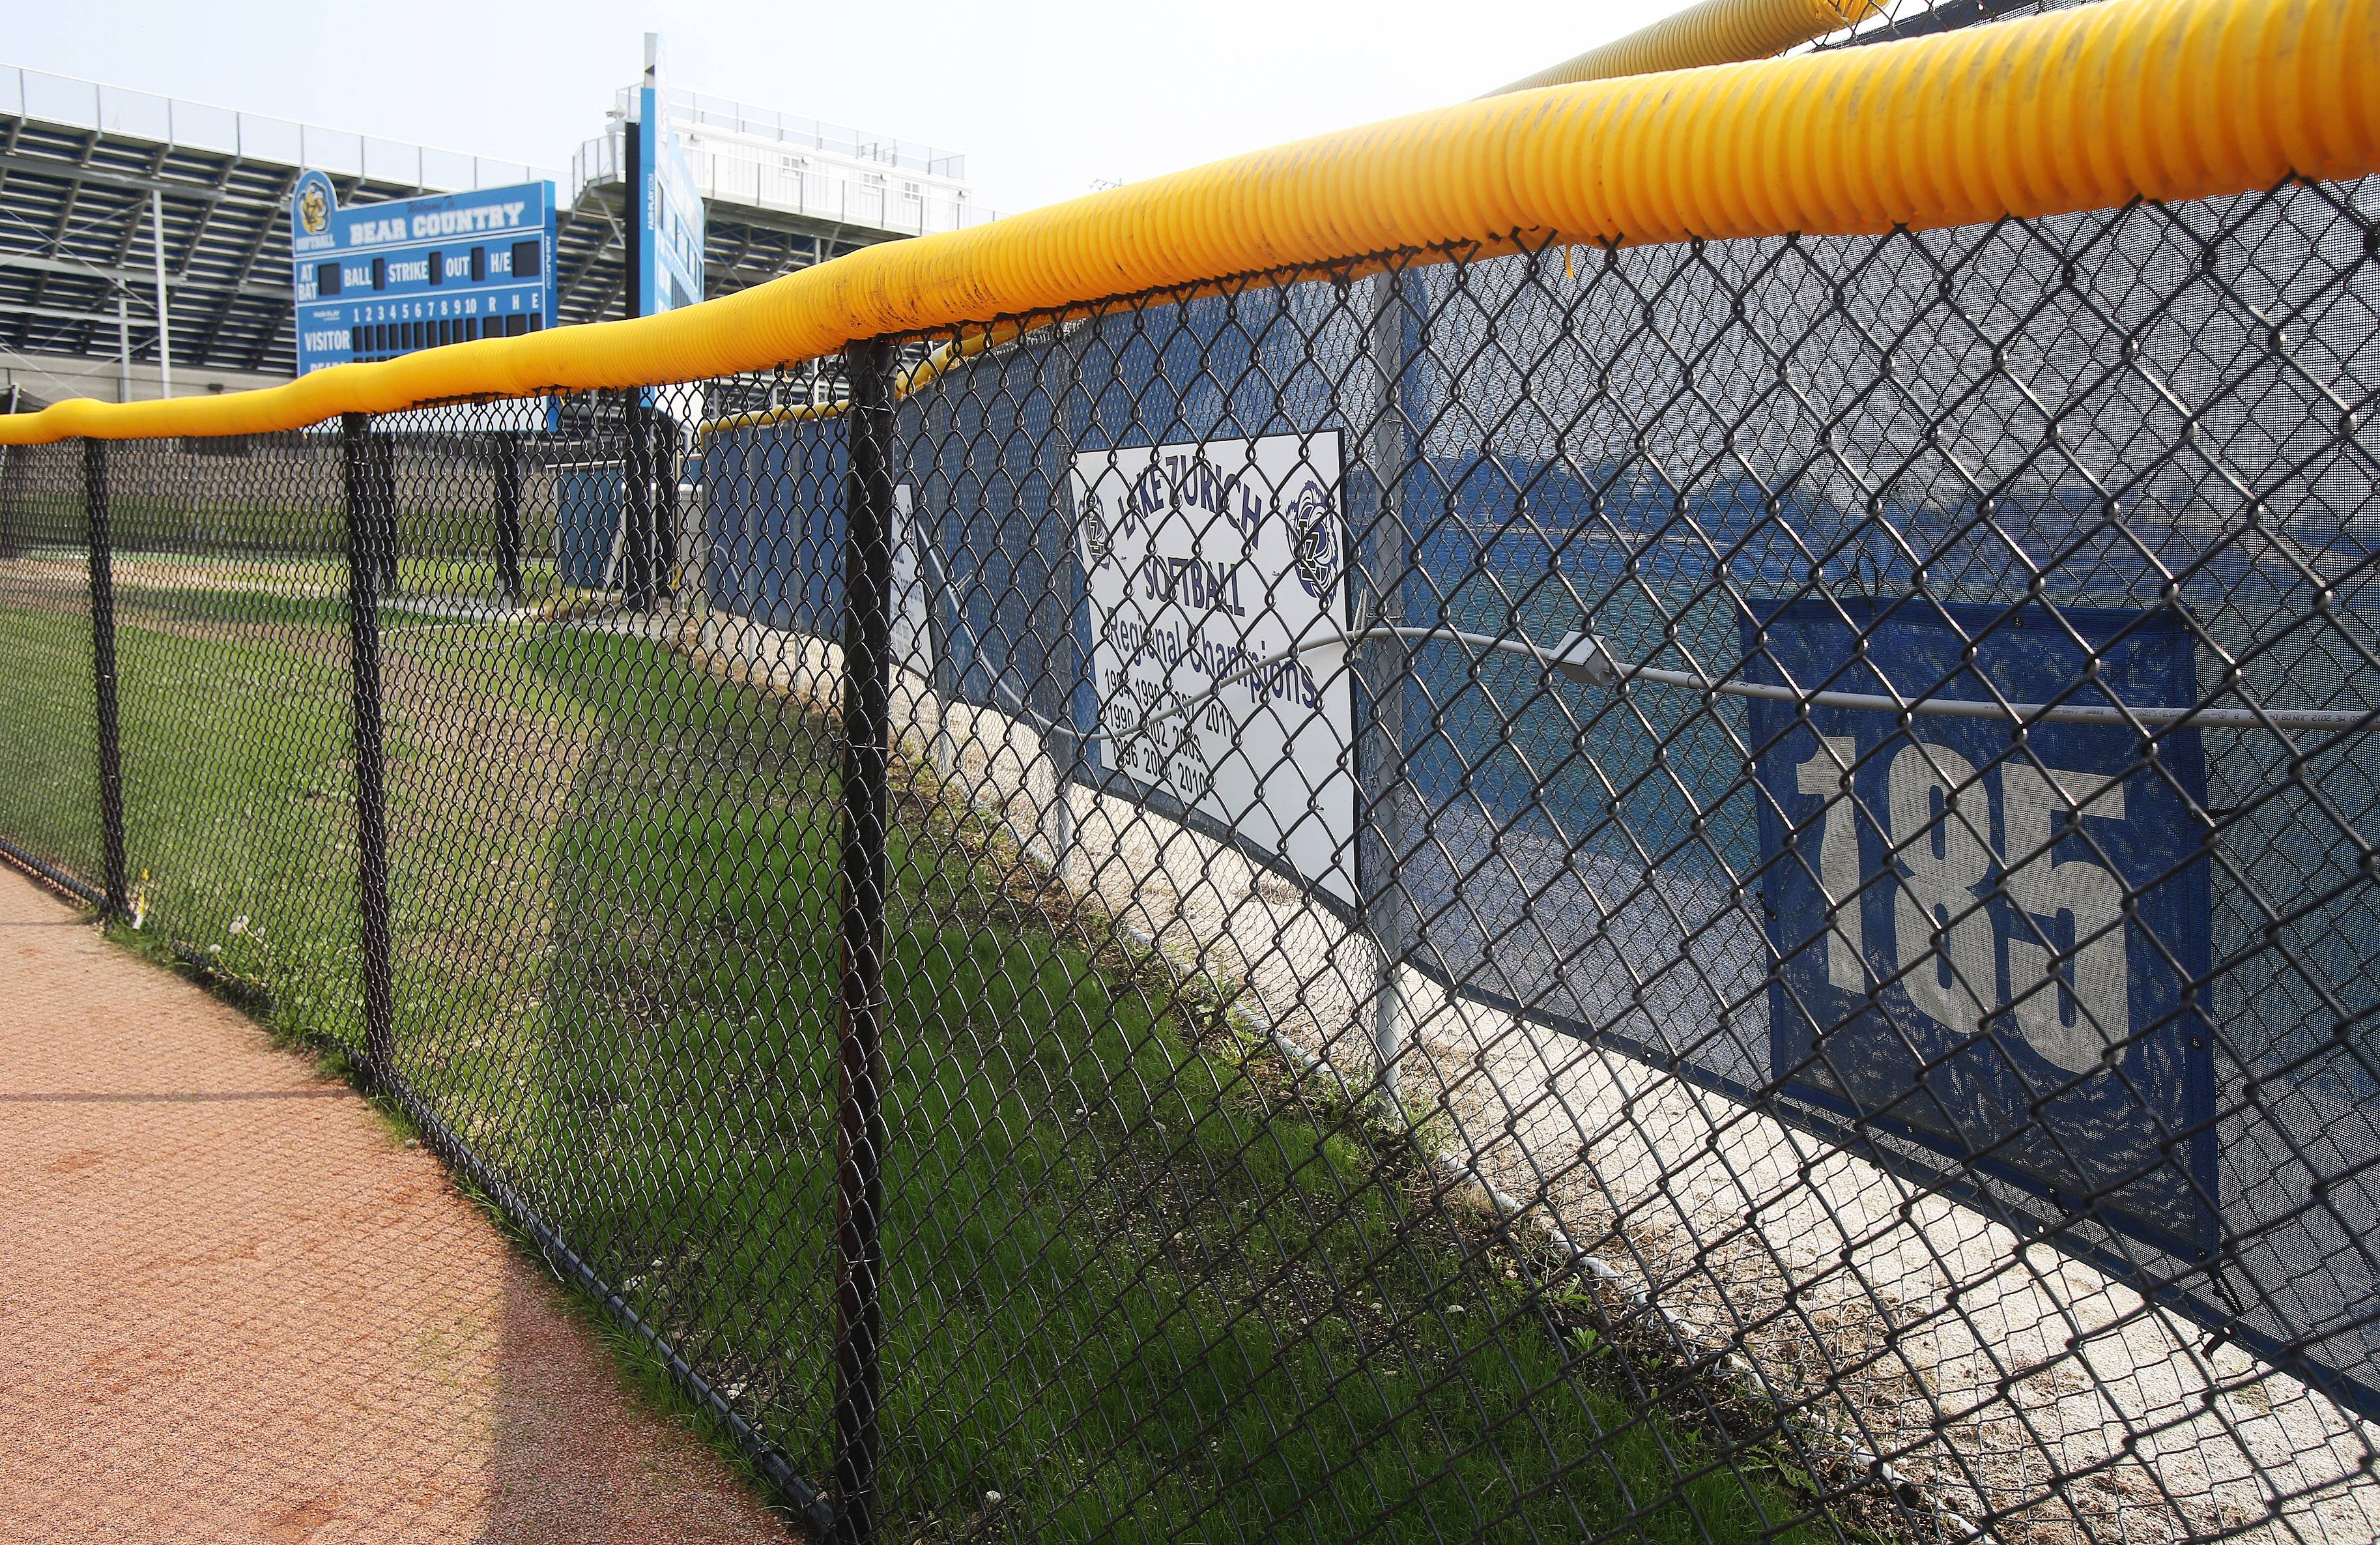 The outfield fence at Lake Zurich High School softball field is 185 feet from home plate, the minimum distance allowed by the Illinois High School Association.